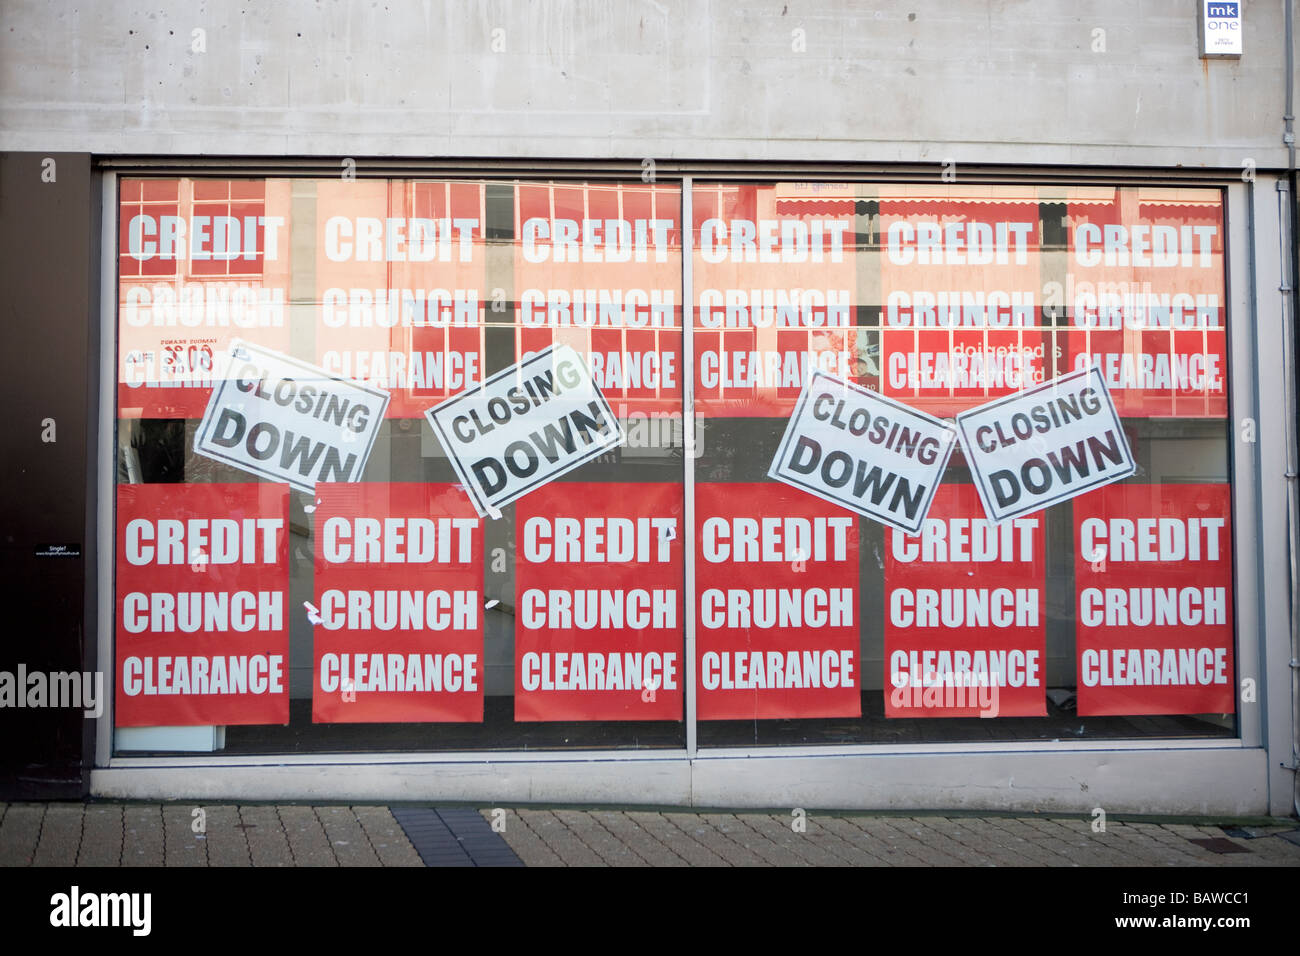 shop windows closed shops due to credit crunch recession great Britain UK economy downturn - Stock Image